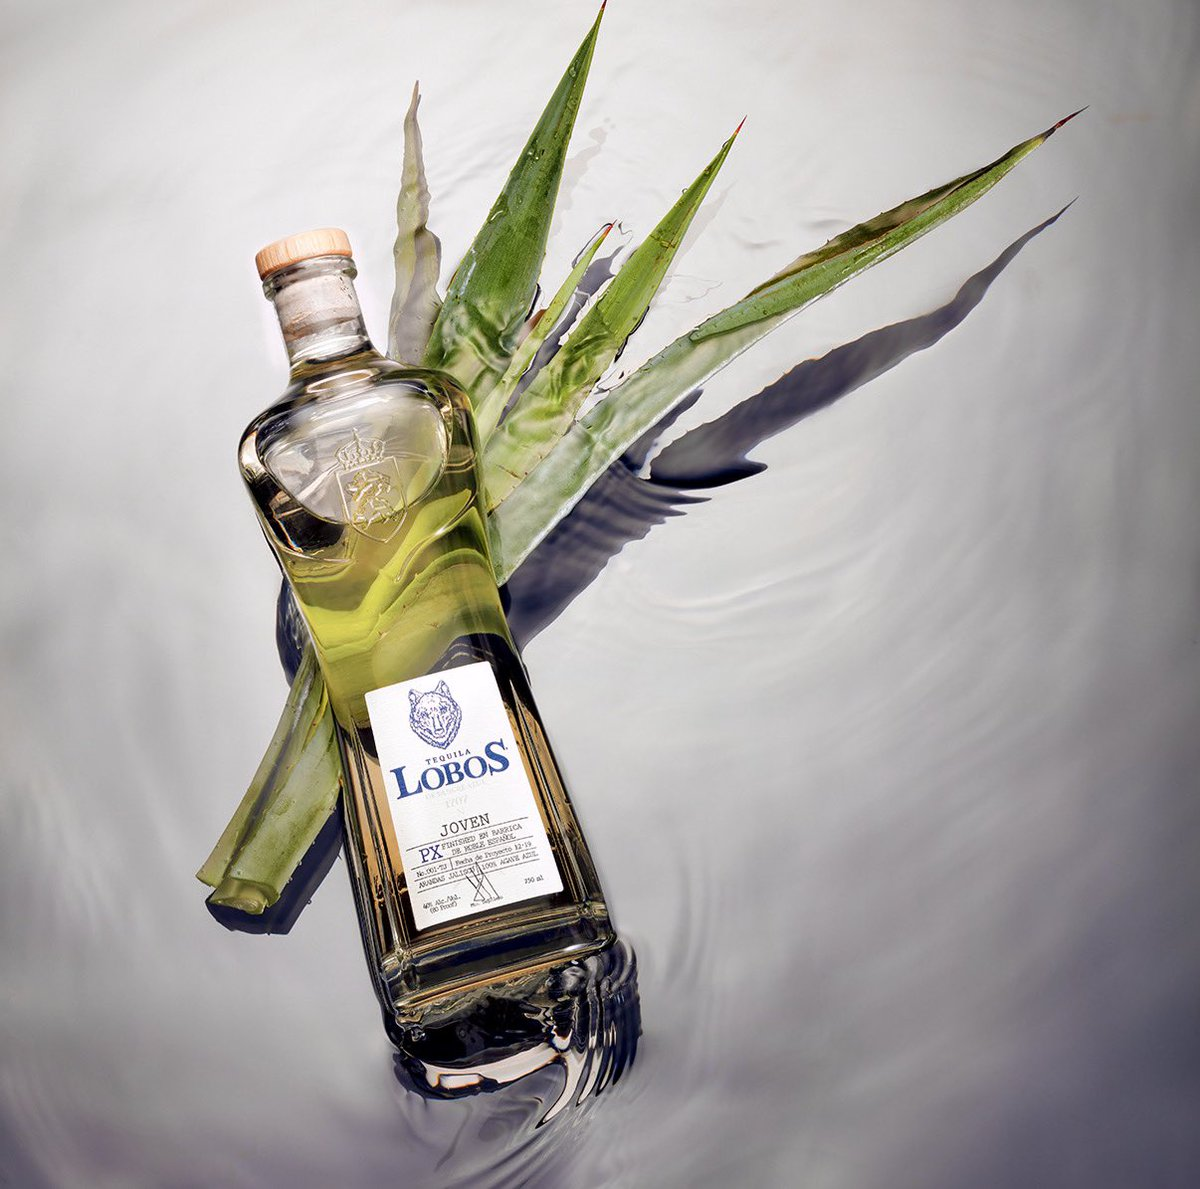 Joven. The product of 100% Blue Weber agave, matured at least six years until their peak ripeness. The harvesting process is ceremonial and swift. Jimadors wield their coas blades with exacting blows to prepare the piña for their next life. Available now: